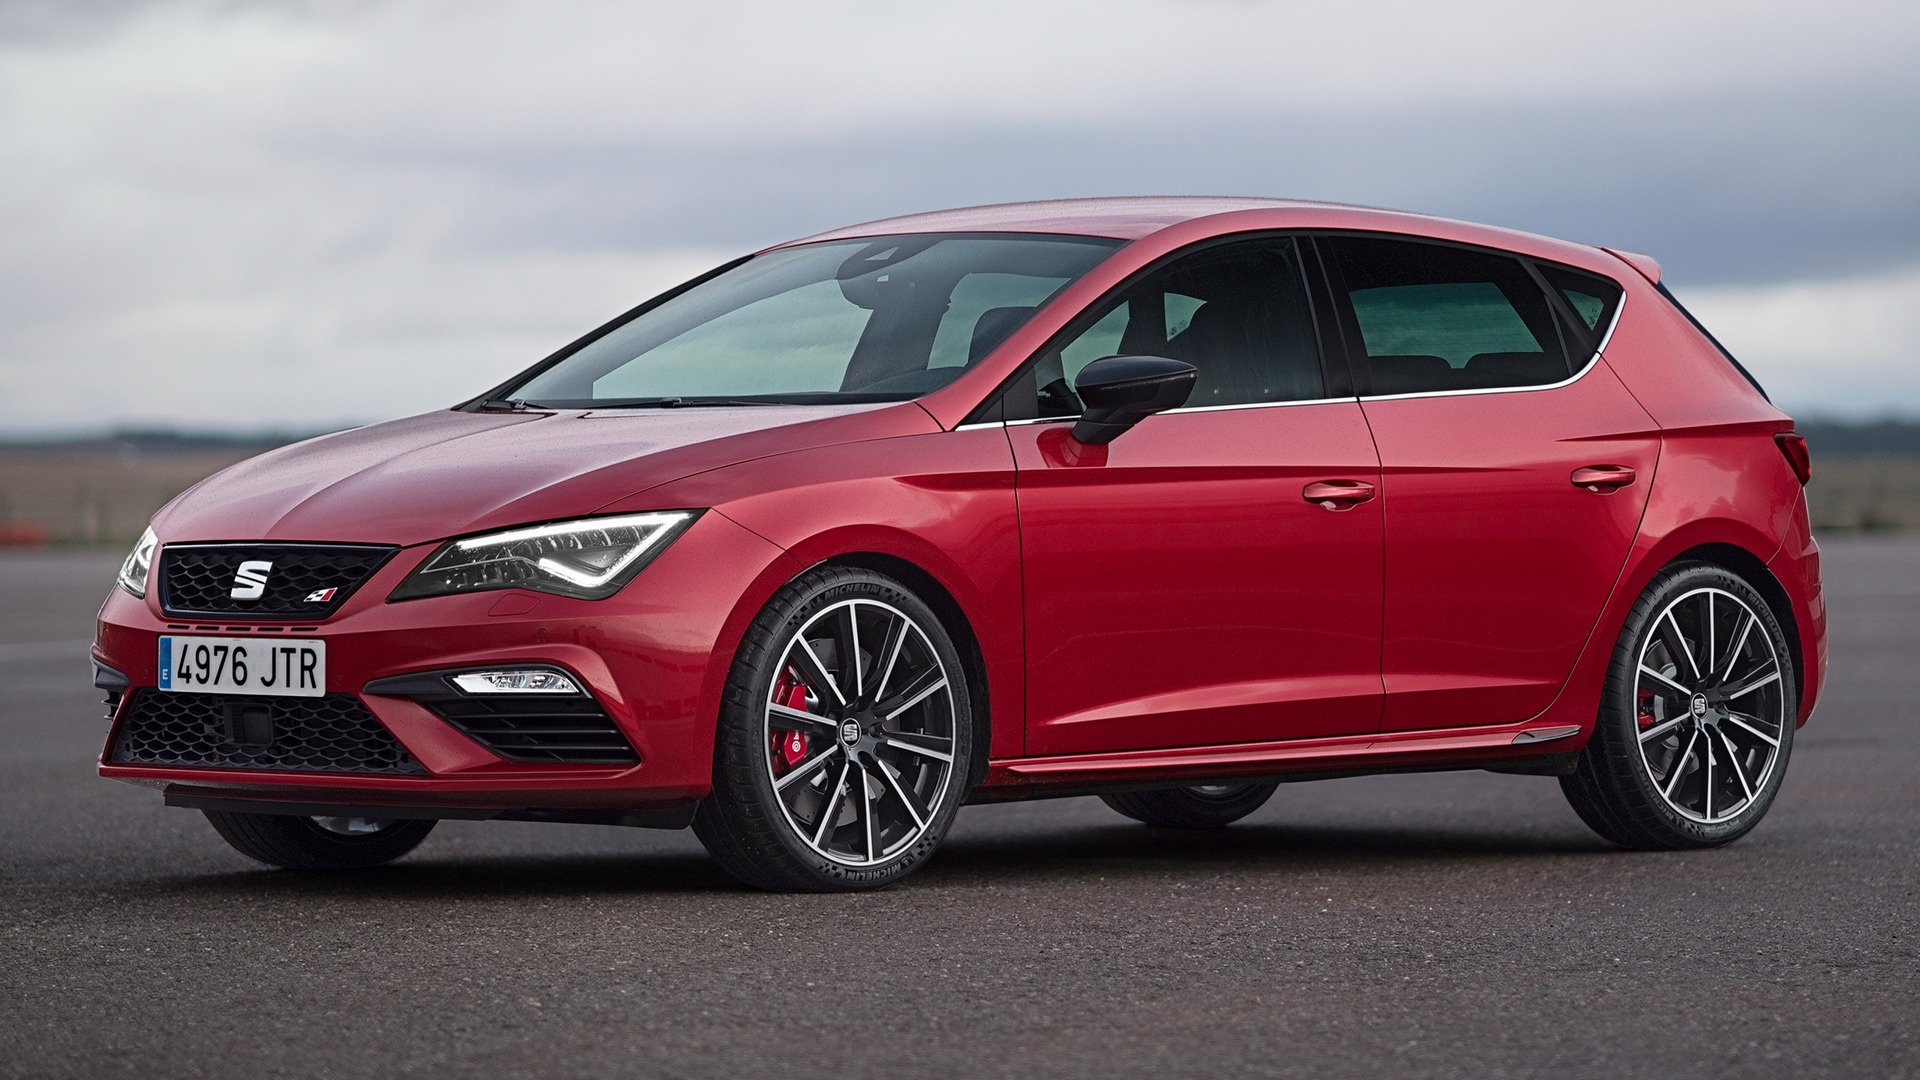 seat leon cupra 300 2017 wallpapers and hd images car pixel. Black Bedroom Furniture Sets. Home Design Ideas